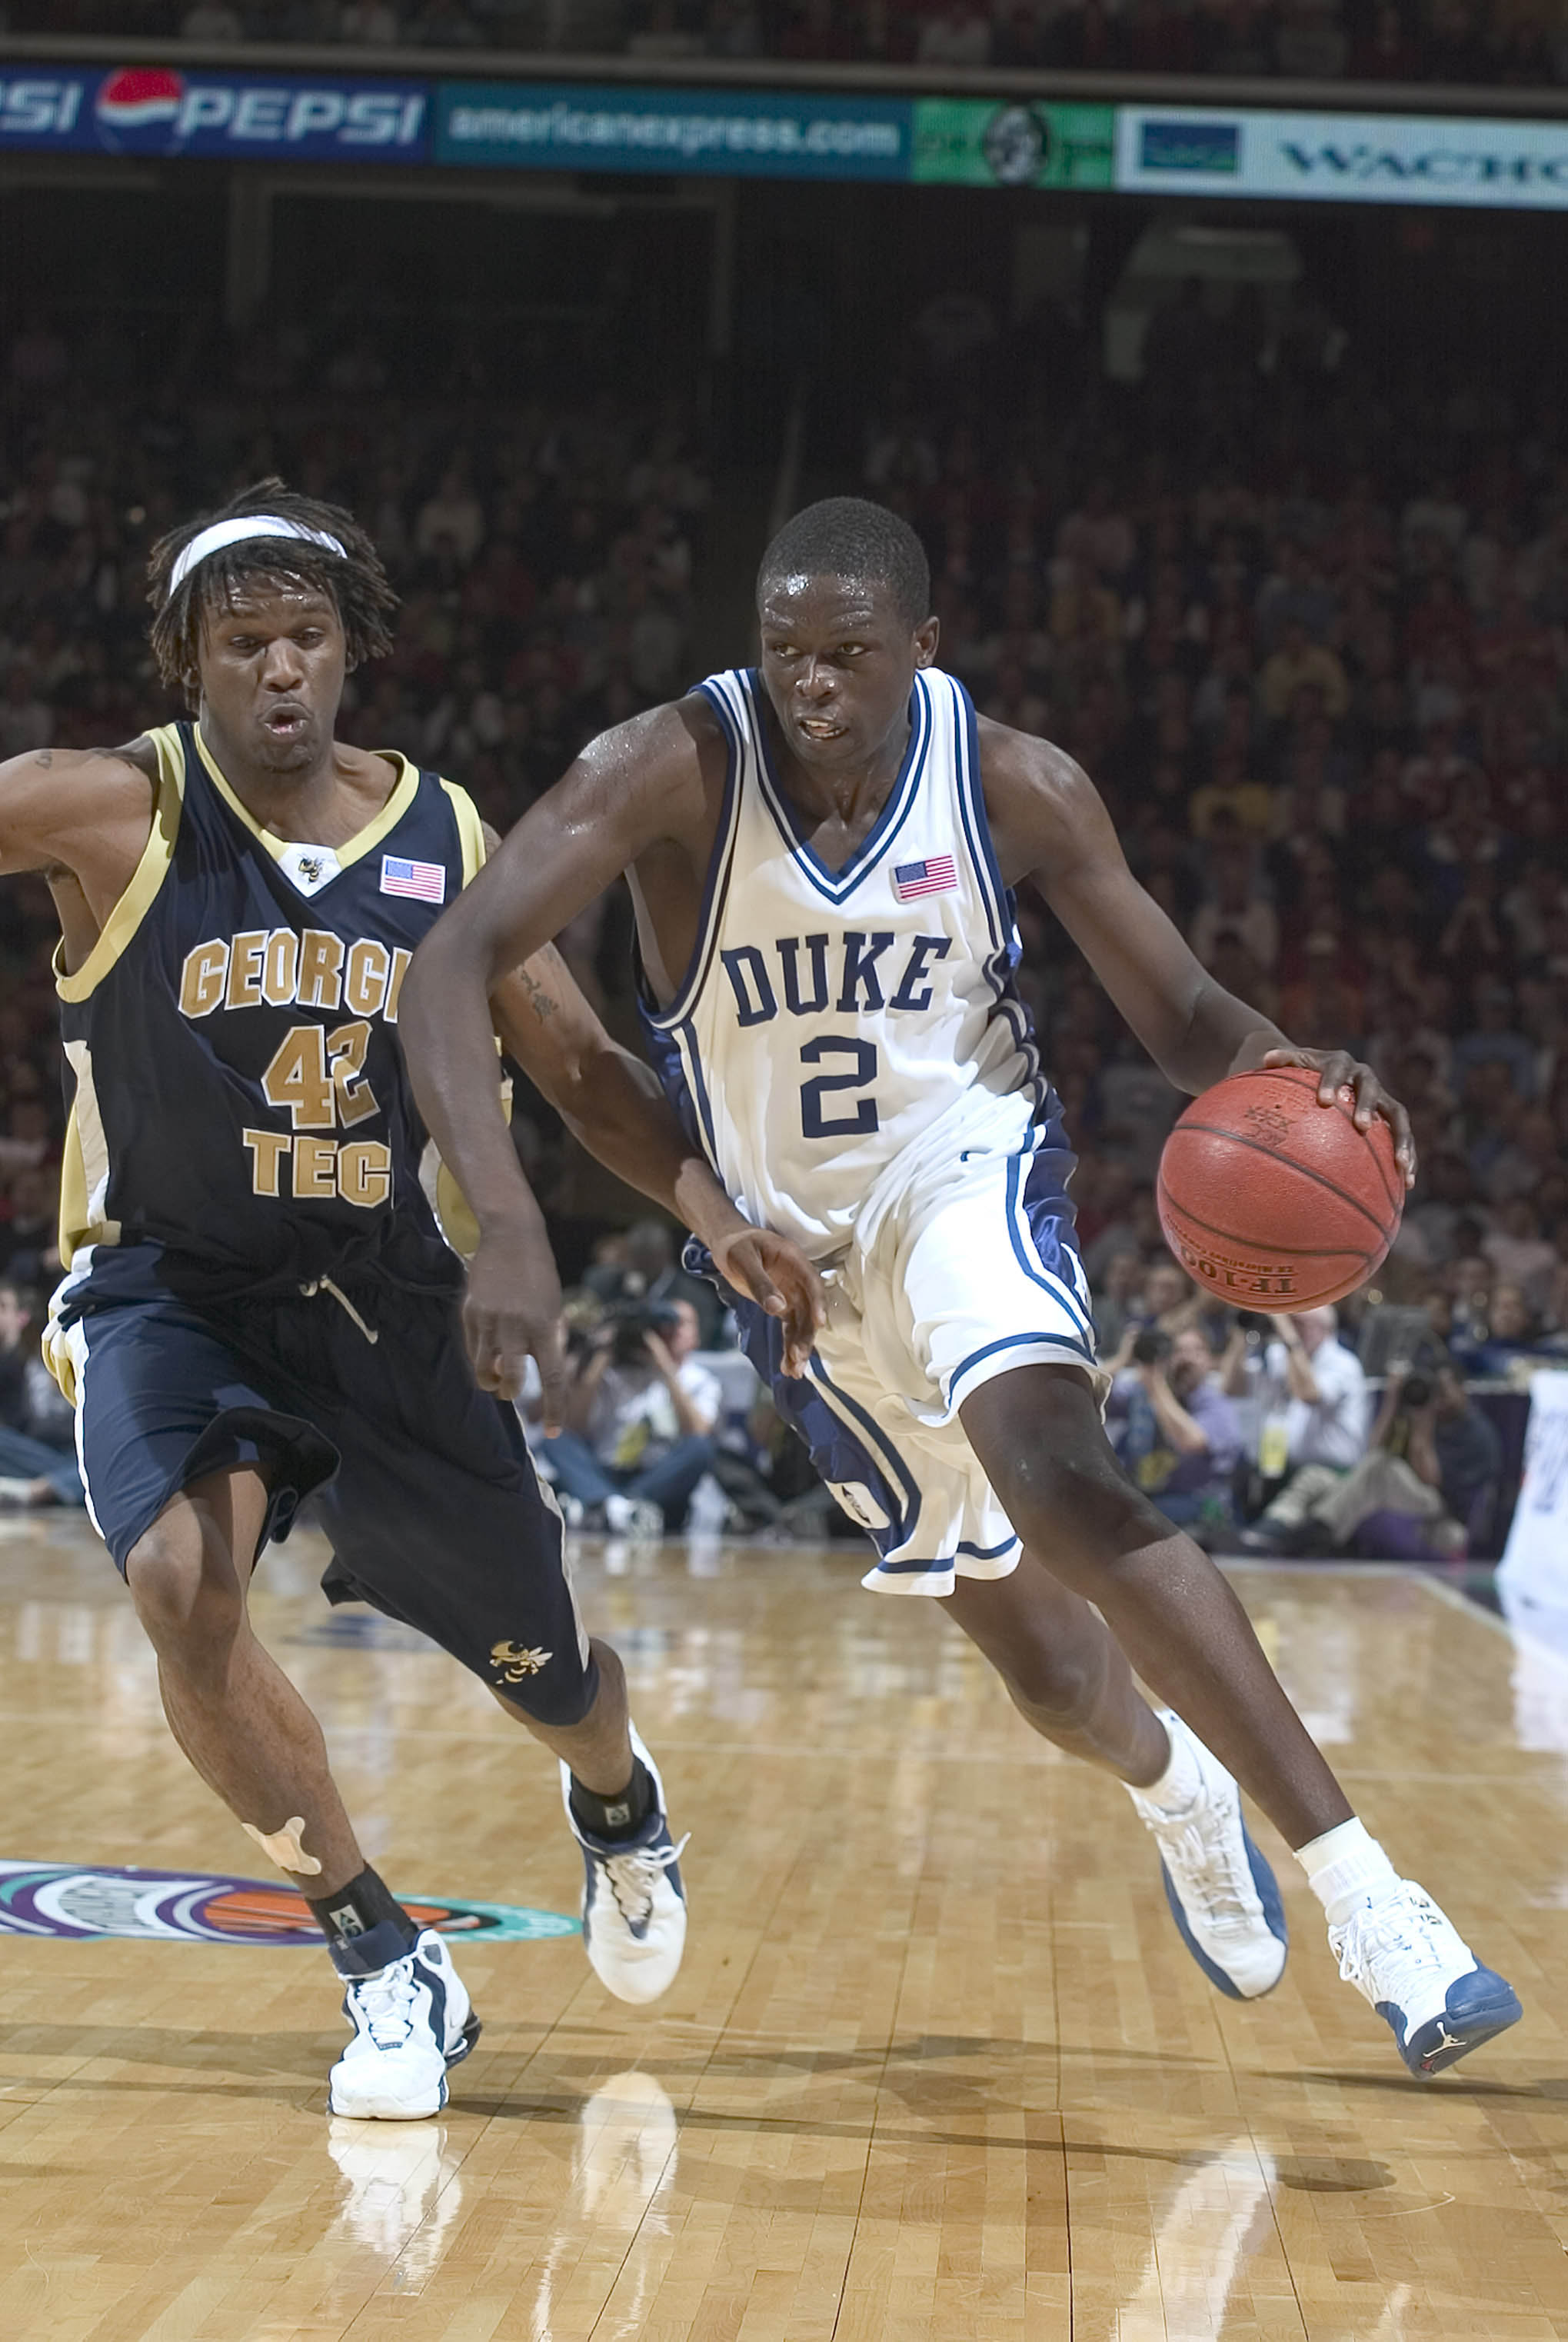 13 March 2004: Luol Deng of the Duke Blue Devils during the Devils 85-71 victory over the Georgia Tech Yellow Jackets in the ACC Tournament semifinal at the Greensboro Coliseum in Greensboro, NC.